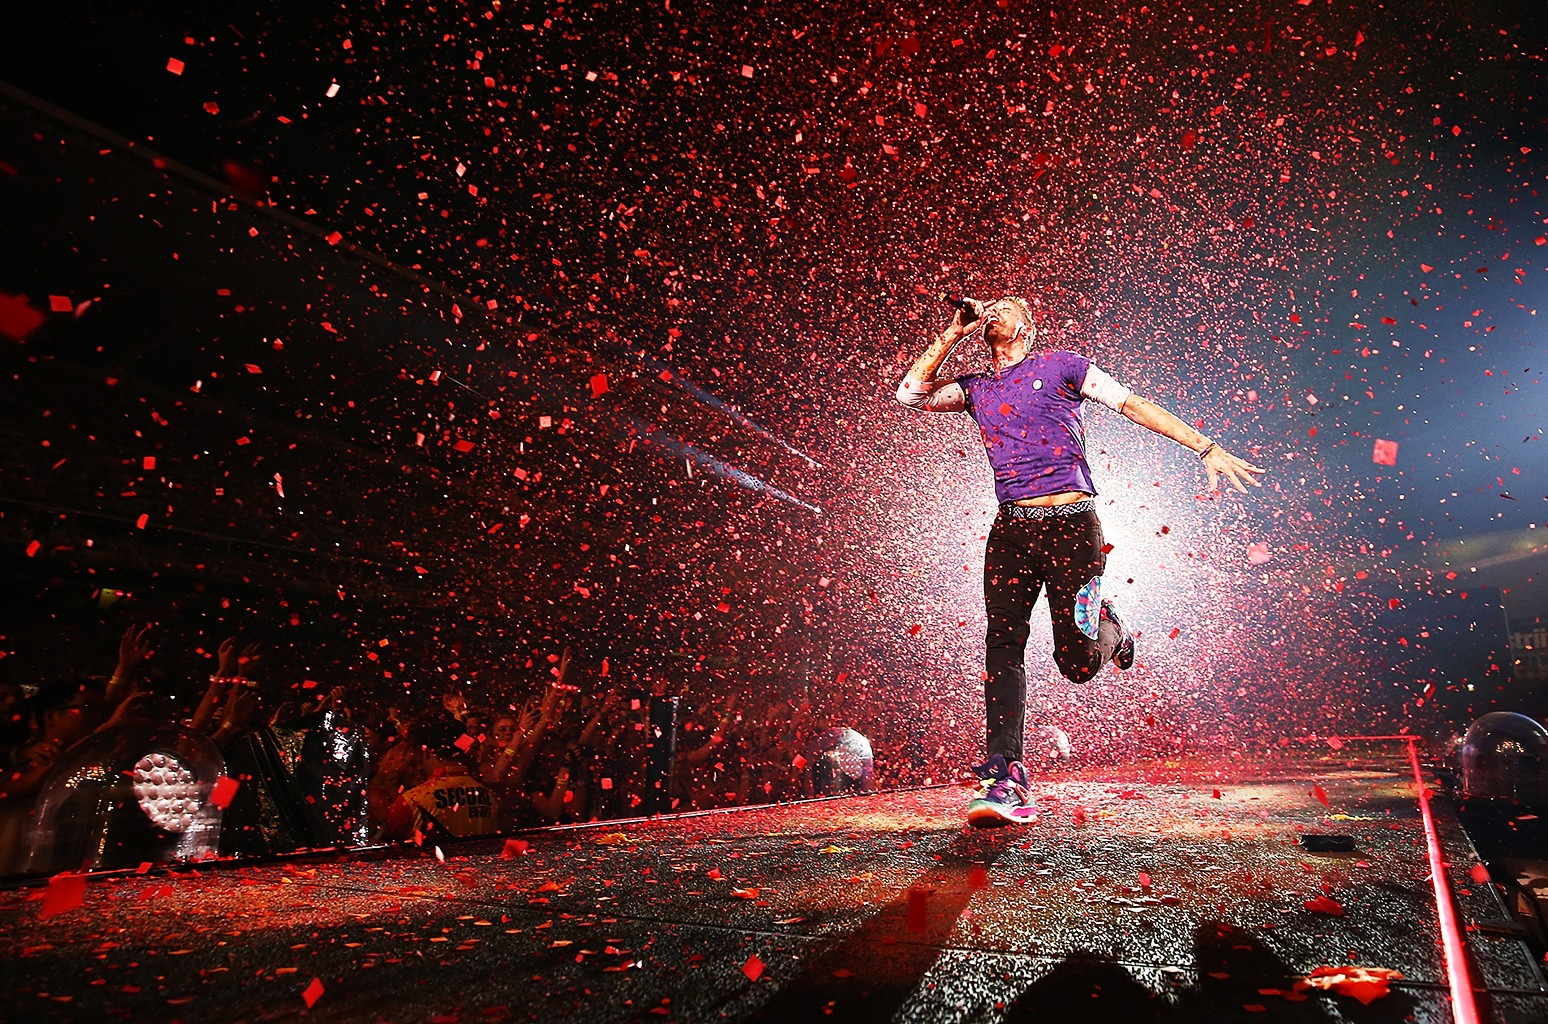 Chris Martin of Coldplay performs at Allianz Stadium on Dec. 13, 2016 in Sydney, Australia.